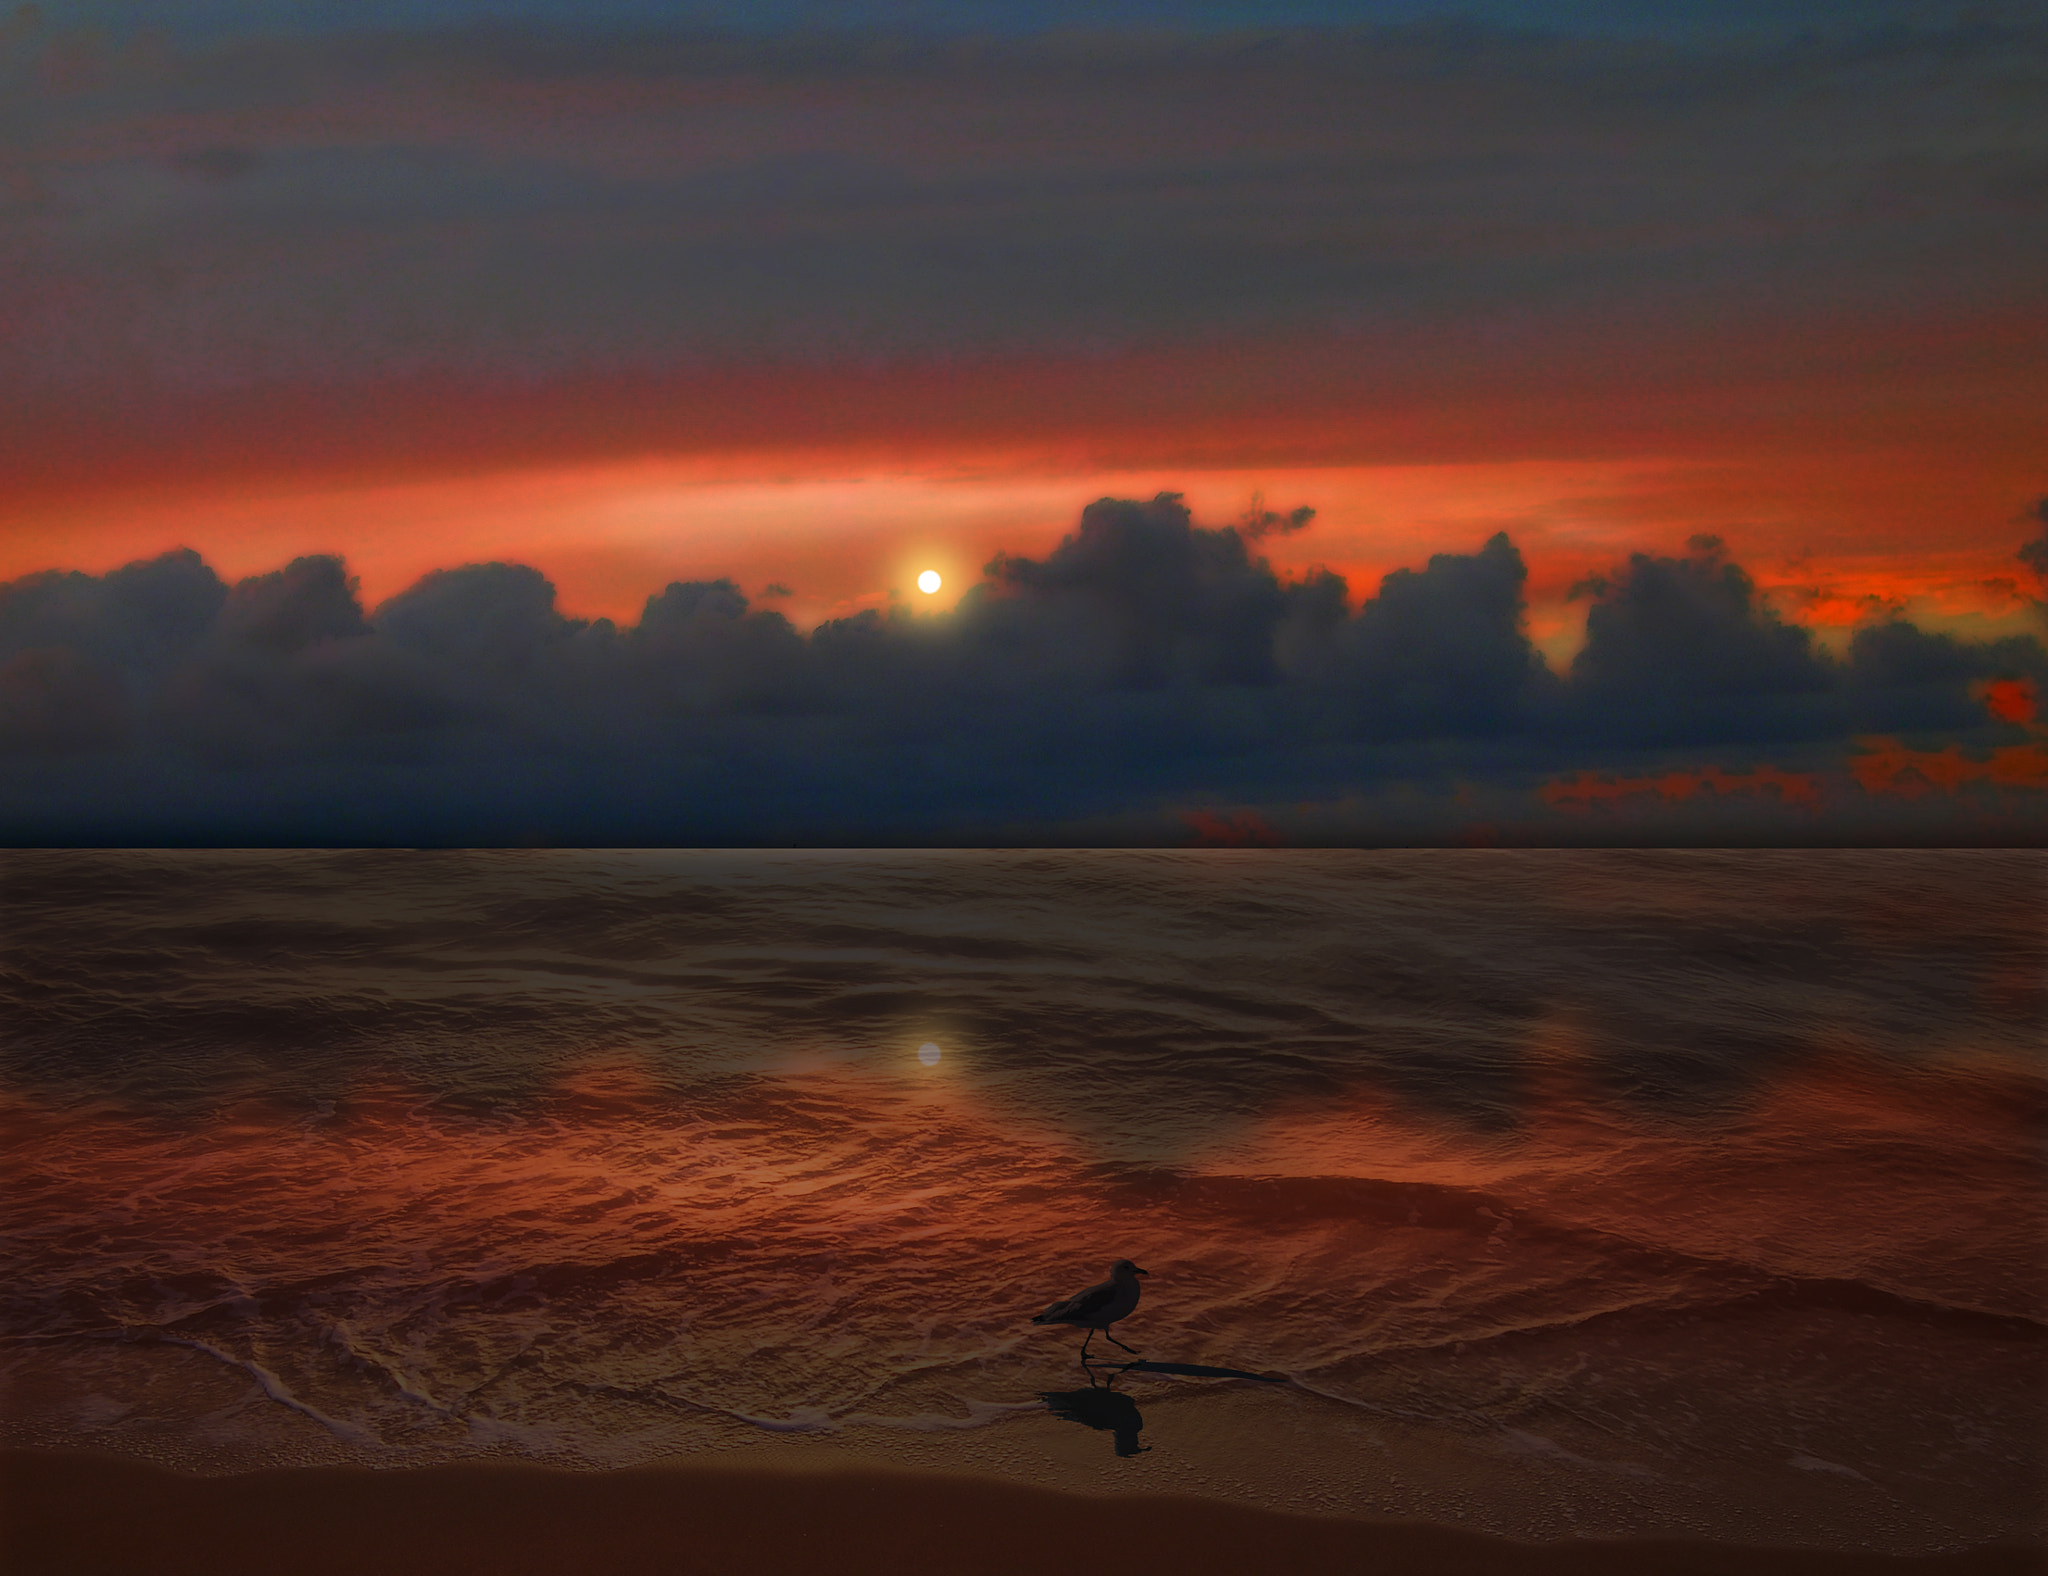 Photograph 2236 by peter holme iii on 500px